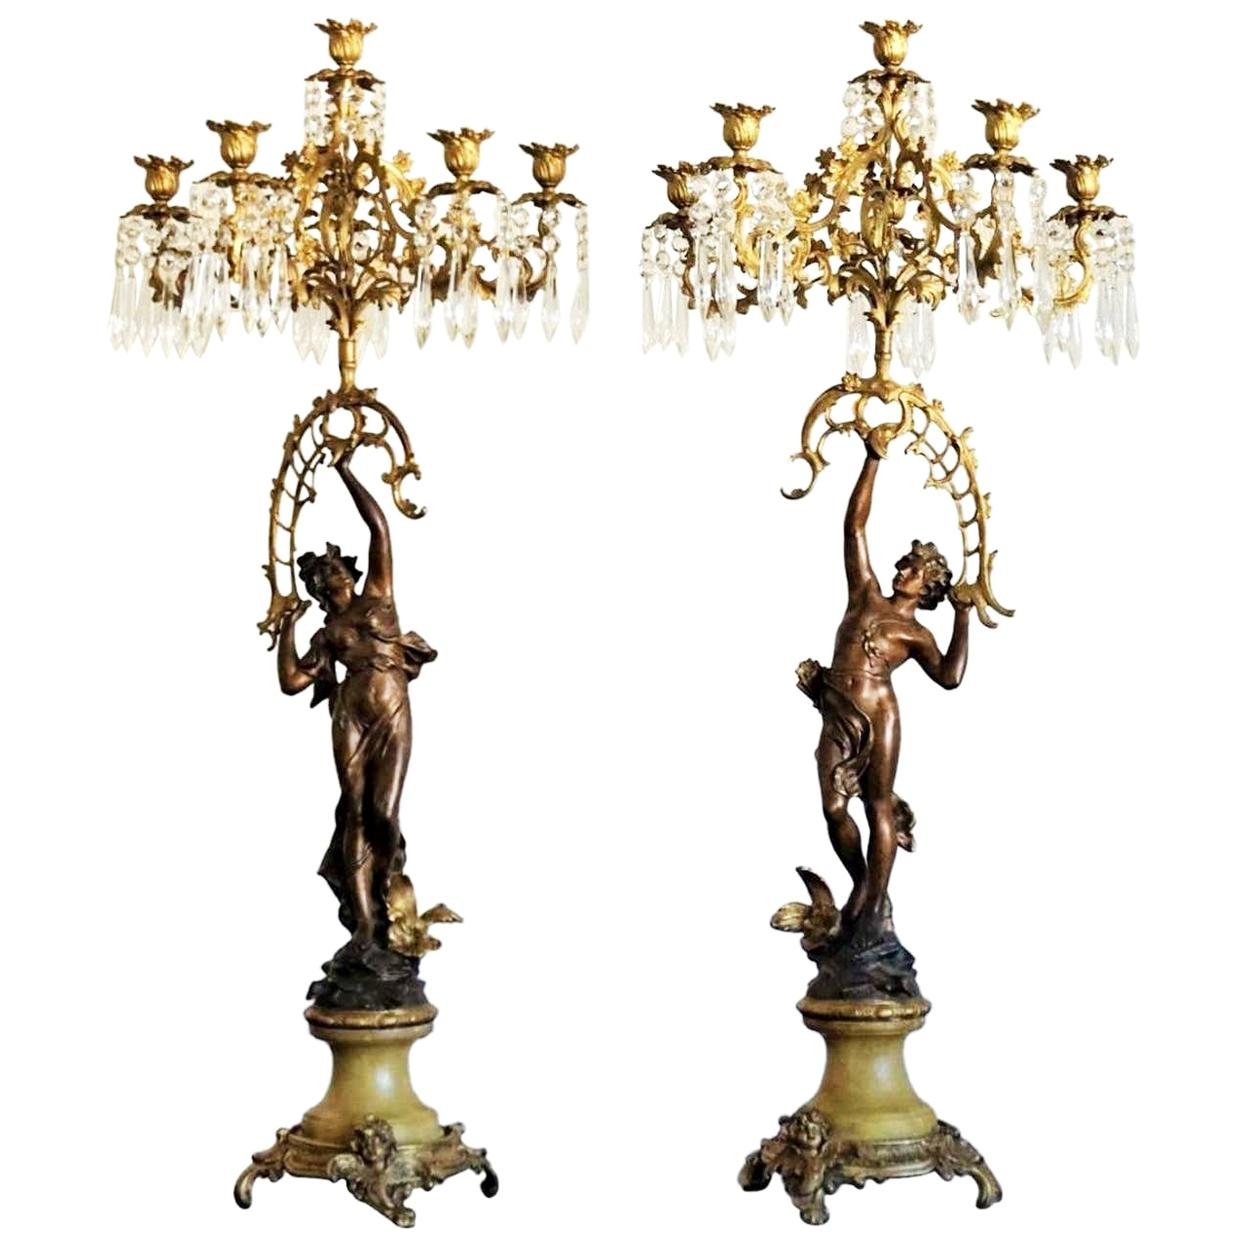 19th Century Pair of French Figurines Patinated and Doré Bronze Candelabras